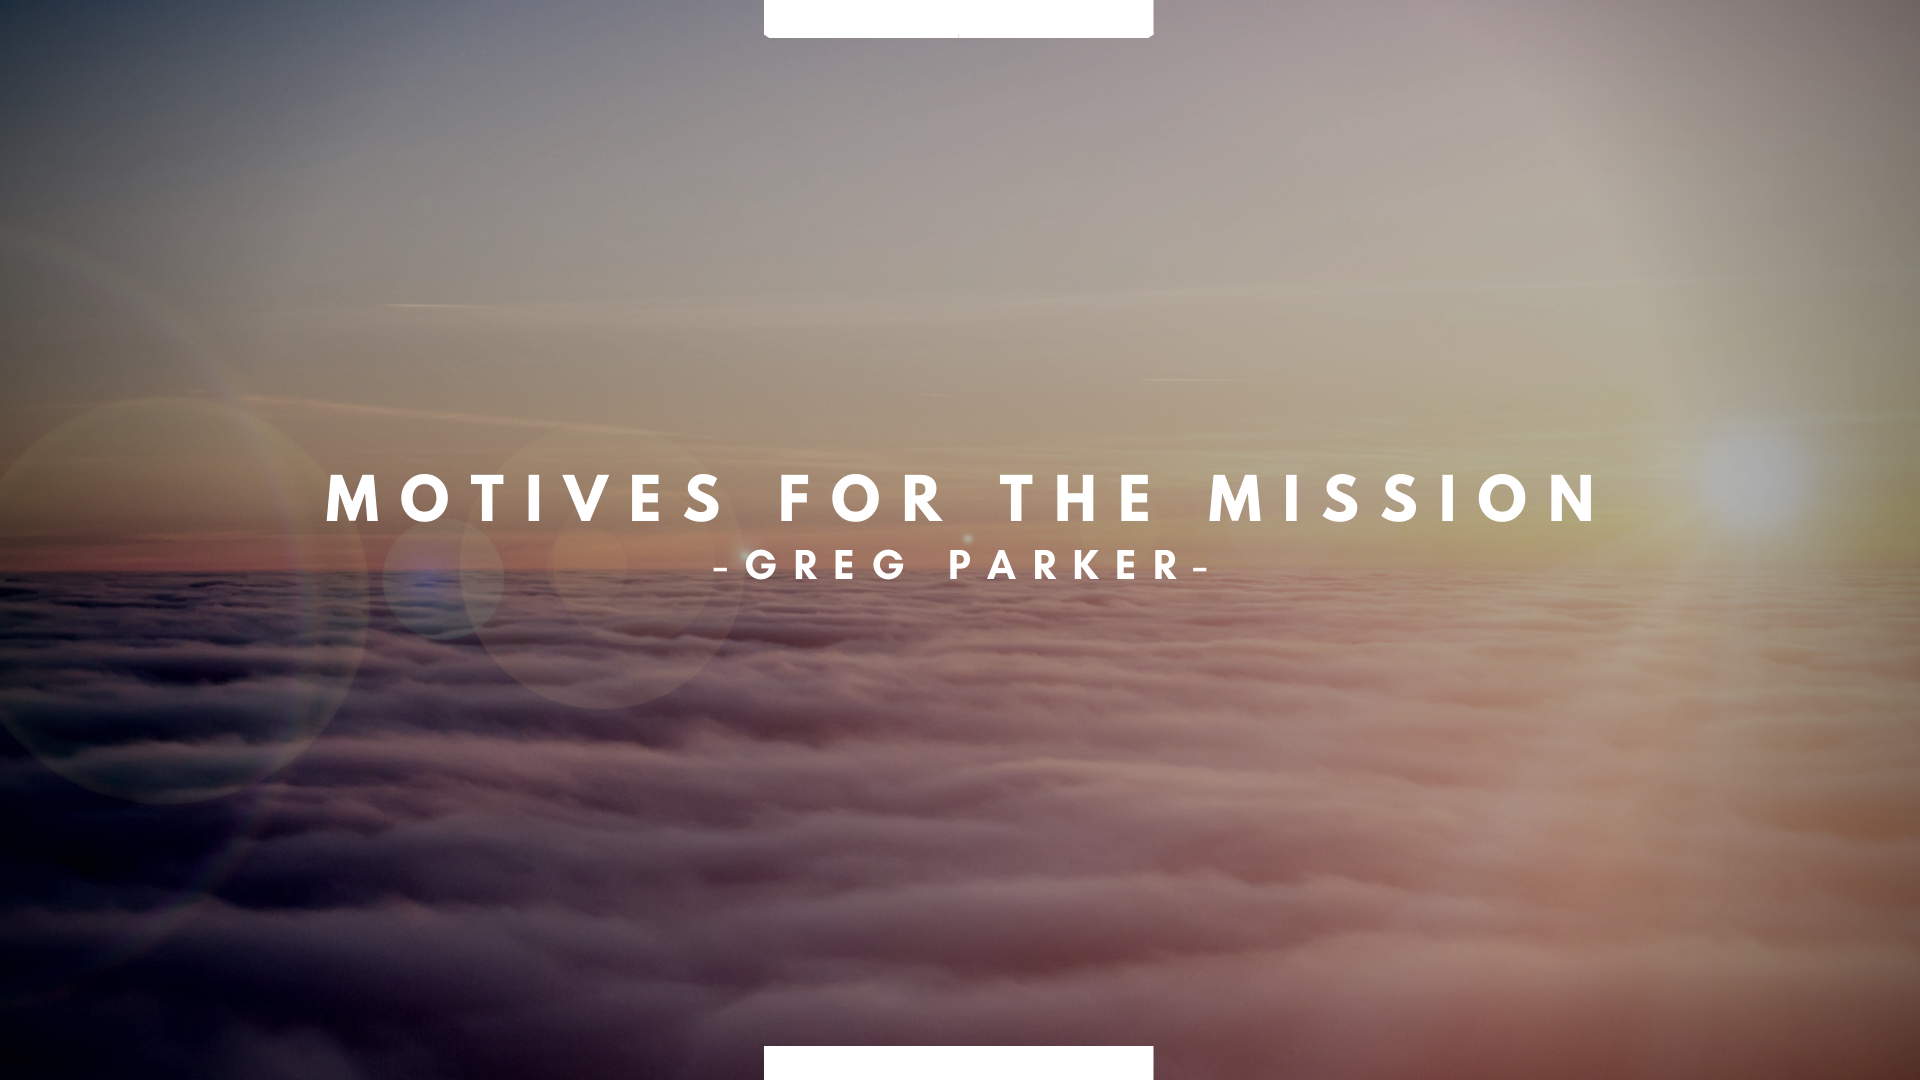 Motives For The Mission